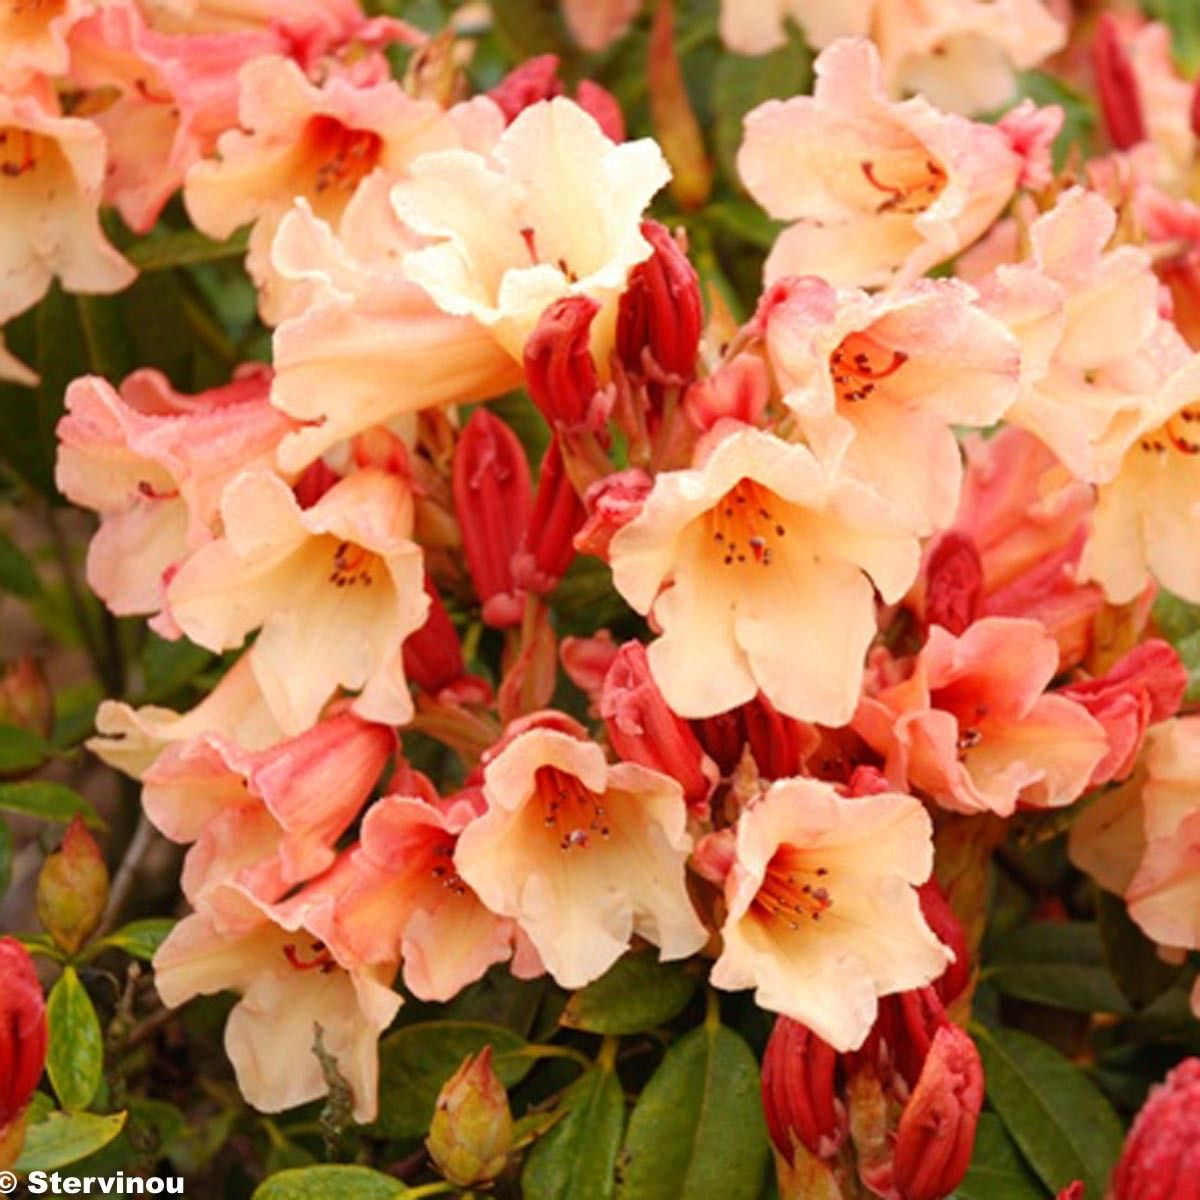 Rhododendron Jingle Bells - Rhododendron nain